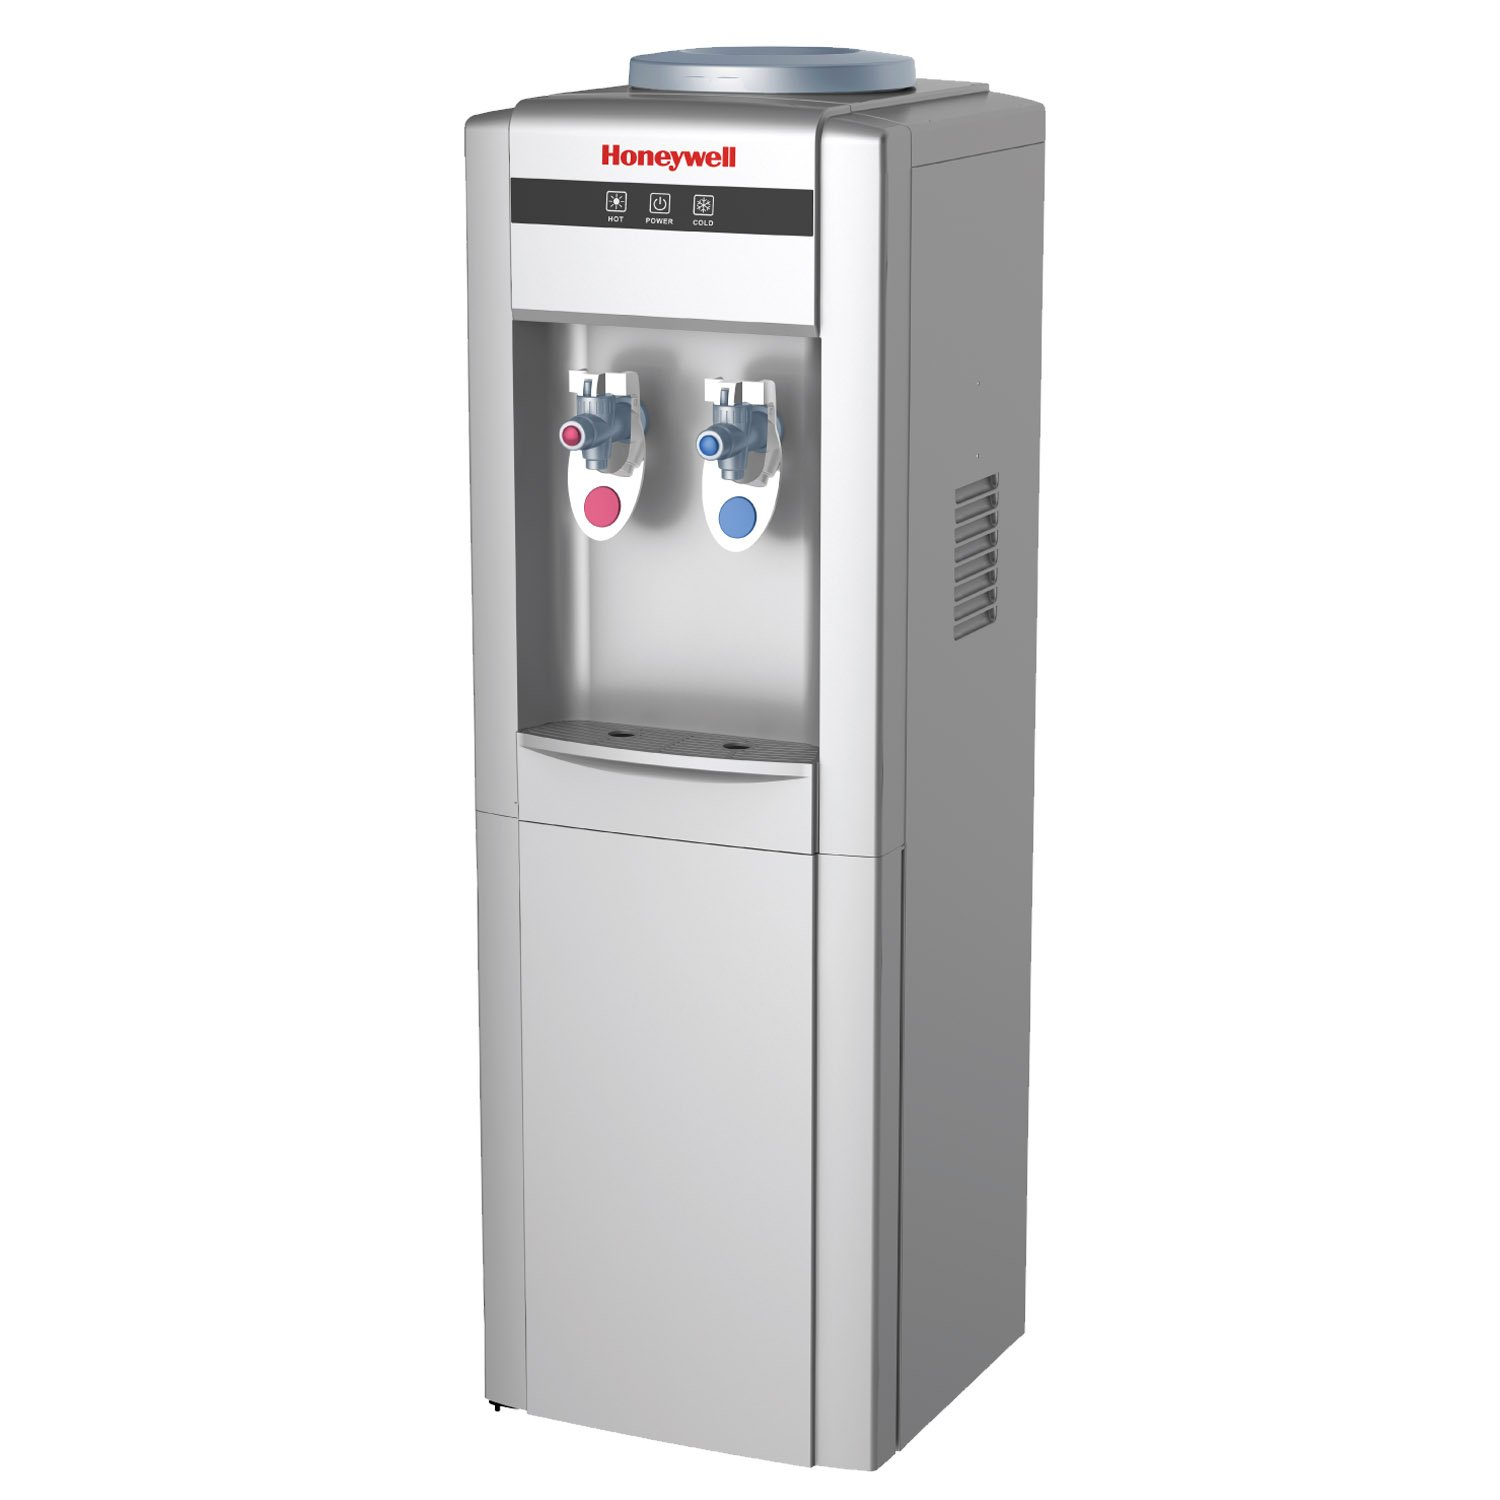 Honeywell HWB1052S2 38-Inch Cabinet Freestanding Hot and Cold Water Dispenser with Stainless Steel Tank to help improve water taste, Back Handle for EASIER HANDLING, Silver